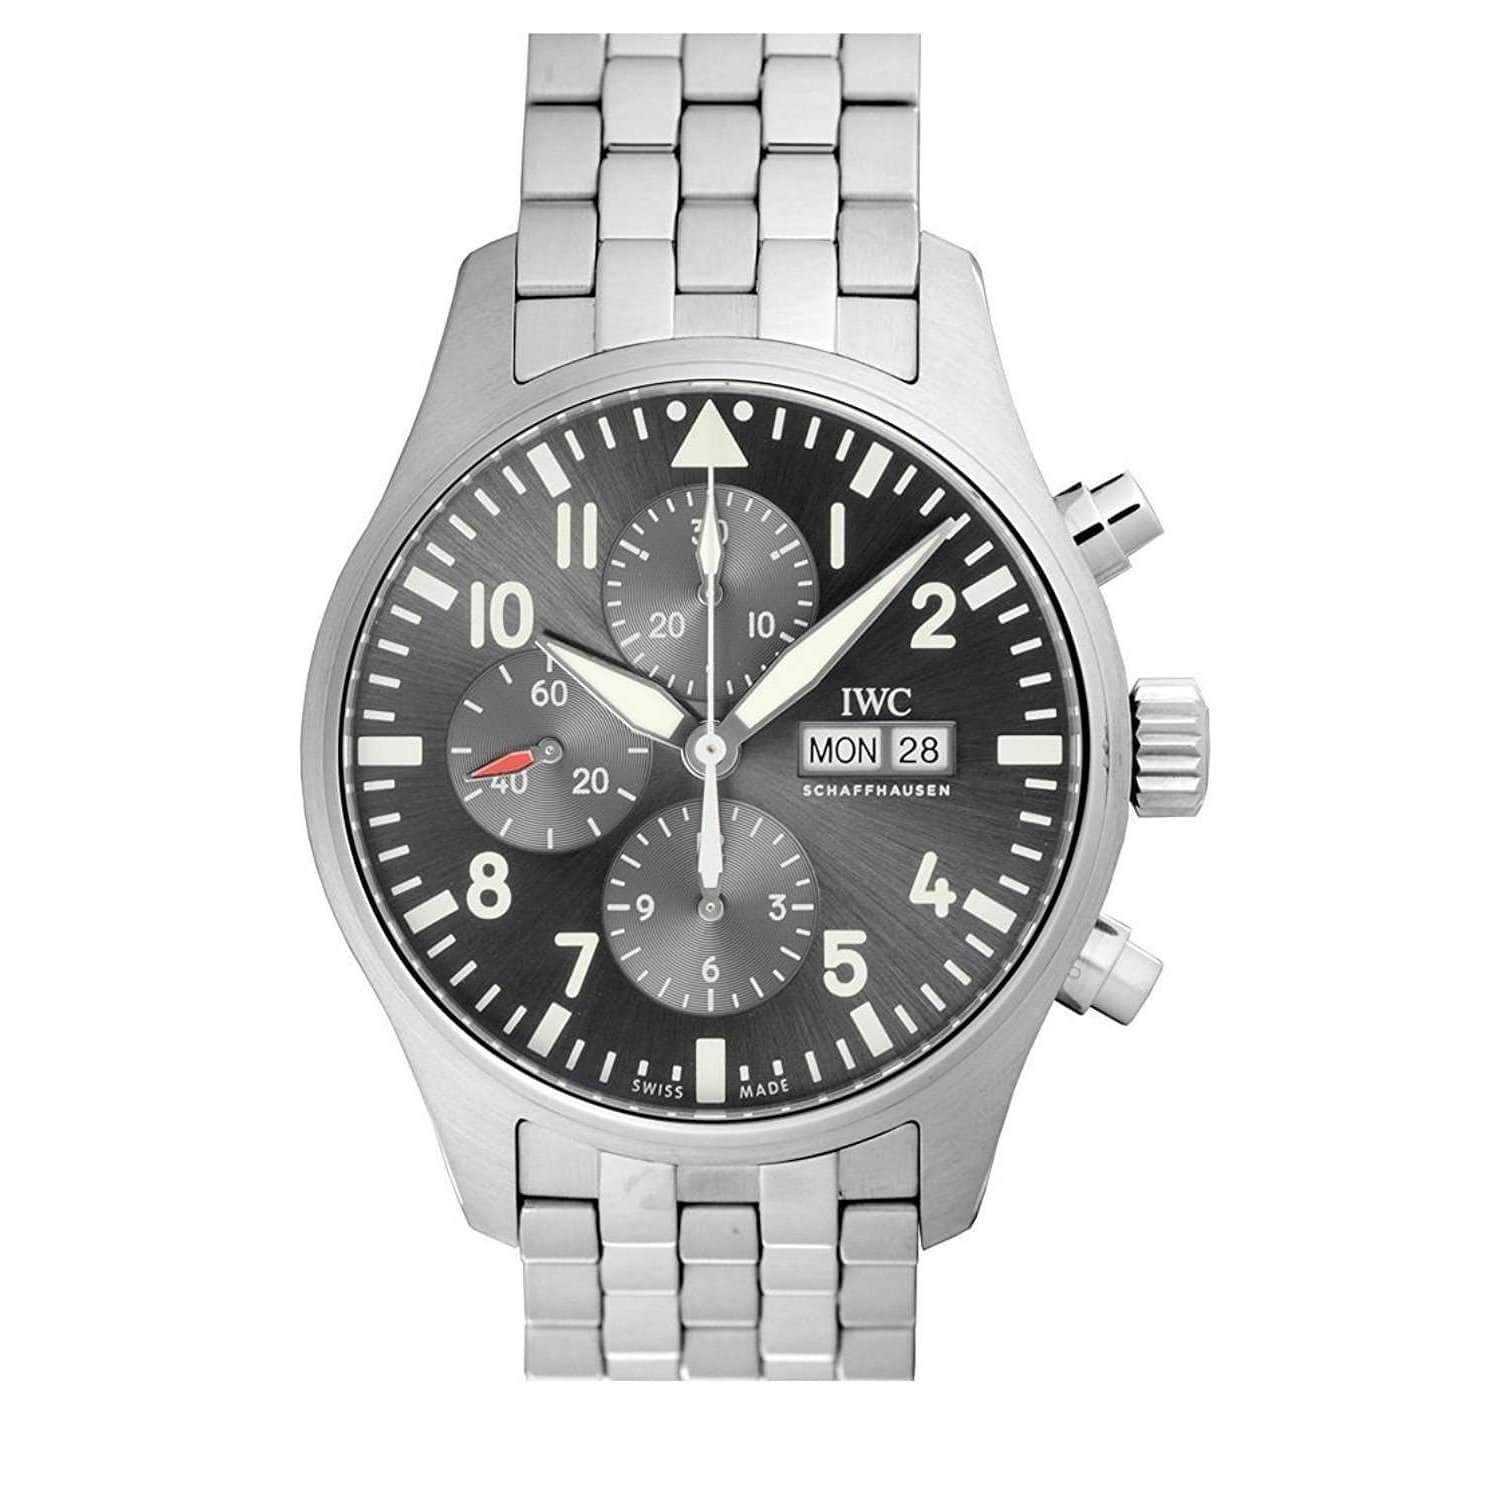 IWC PILOT'S CHRONOGRAPH SPITFIRE MEN WATCH IW377719 - ROOK JAPAN